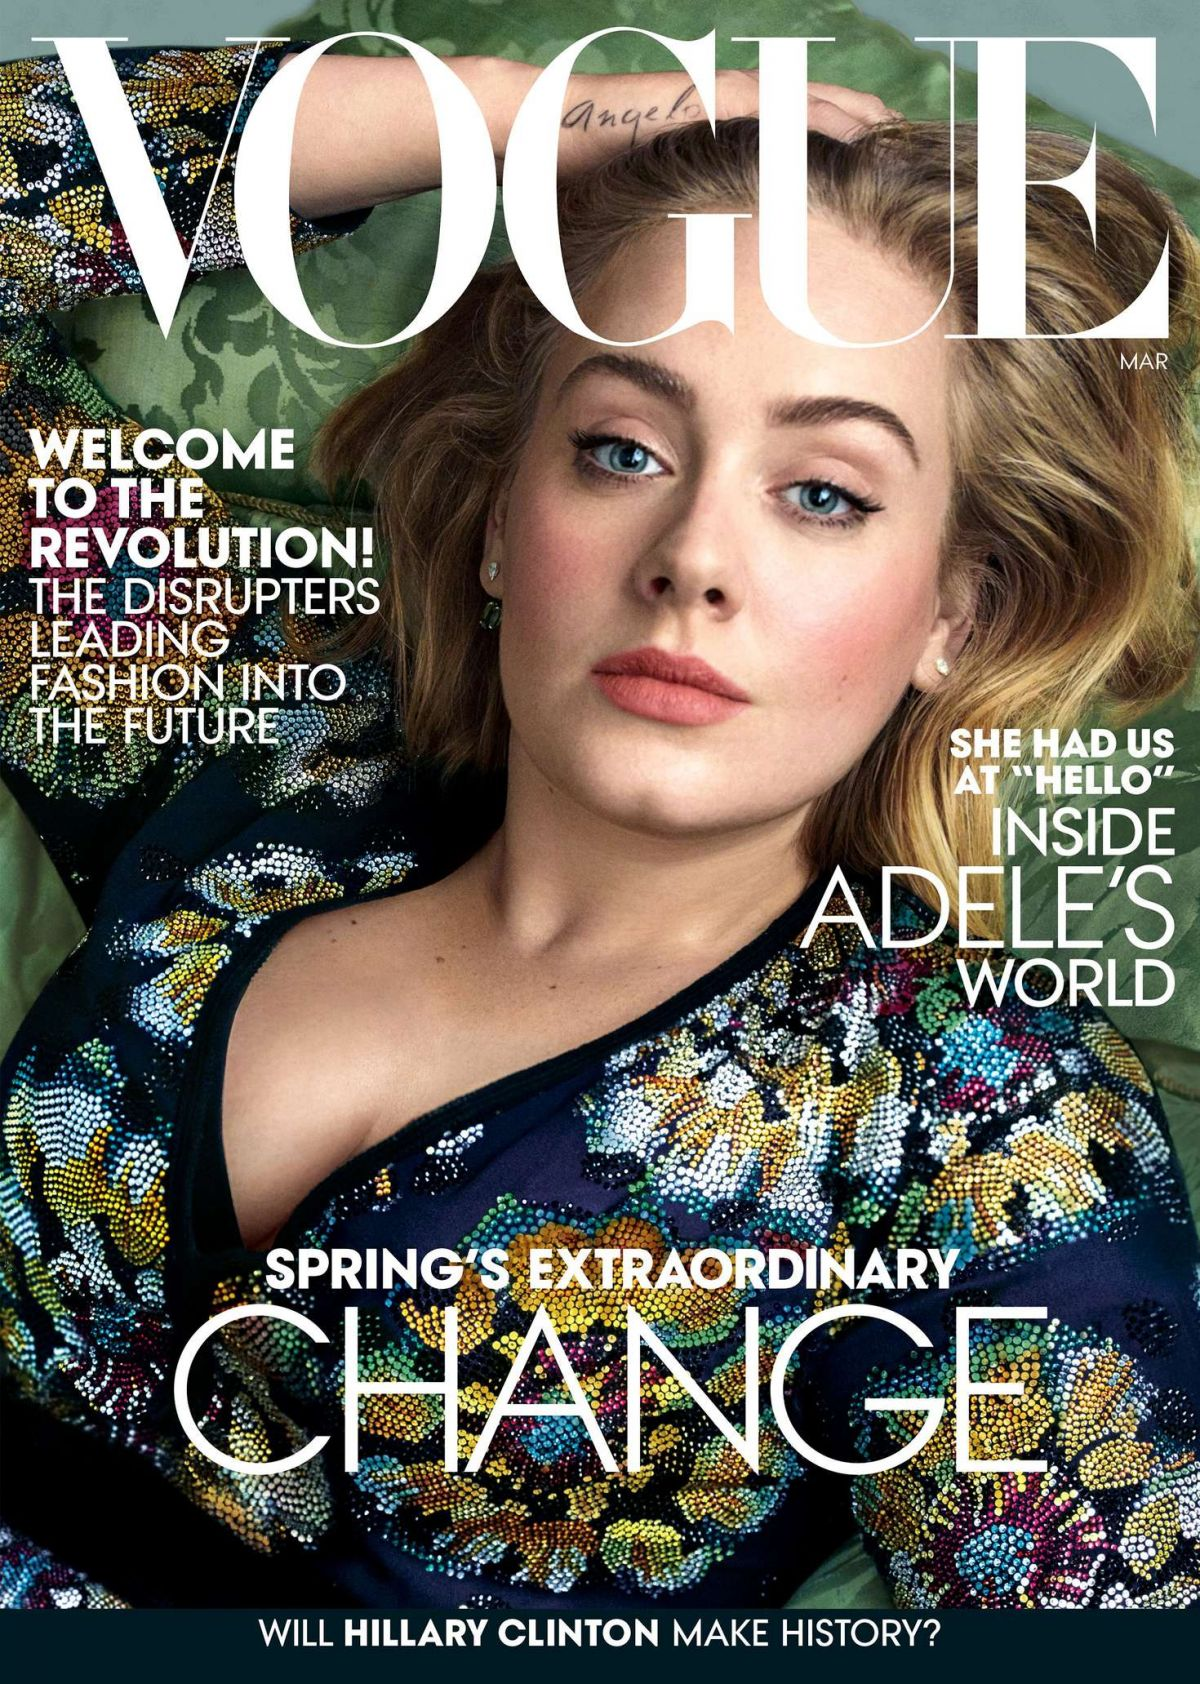 ADELE in Vogue Magazine, March 2016 Issue